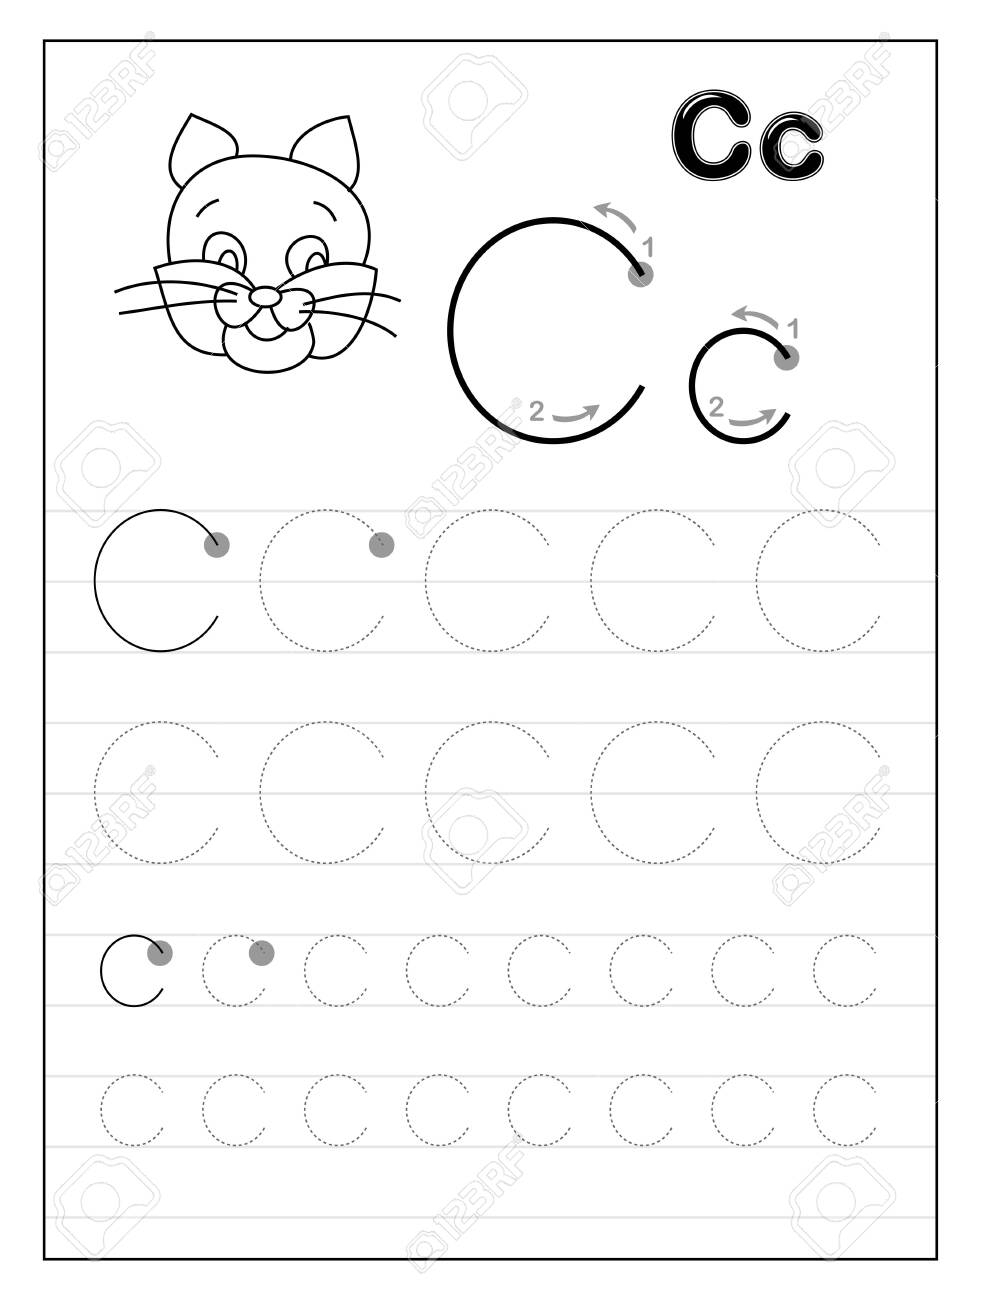 Tracing Alphabet Letter C. Black And White Educational Pages.. in Tracing Letter C Worksheets